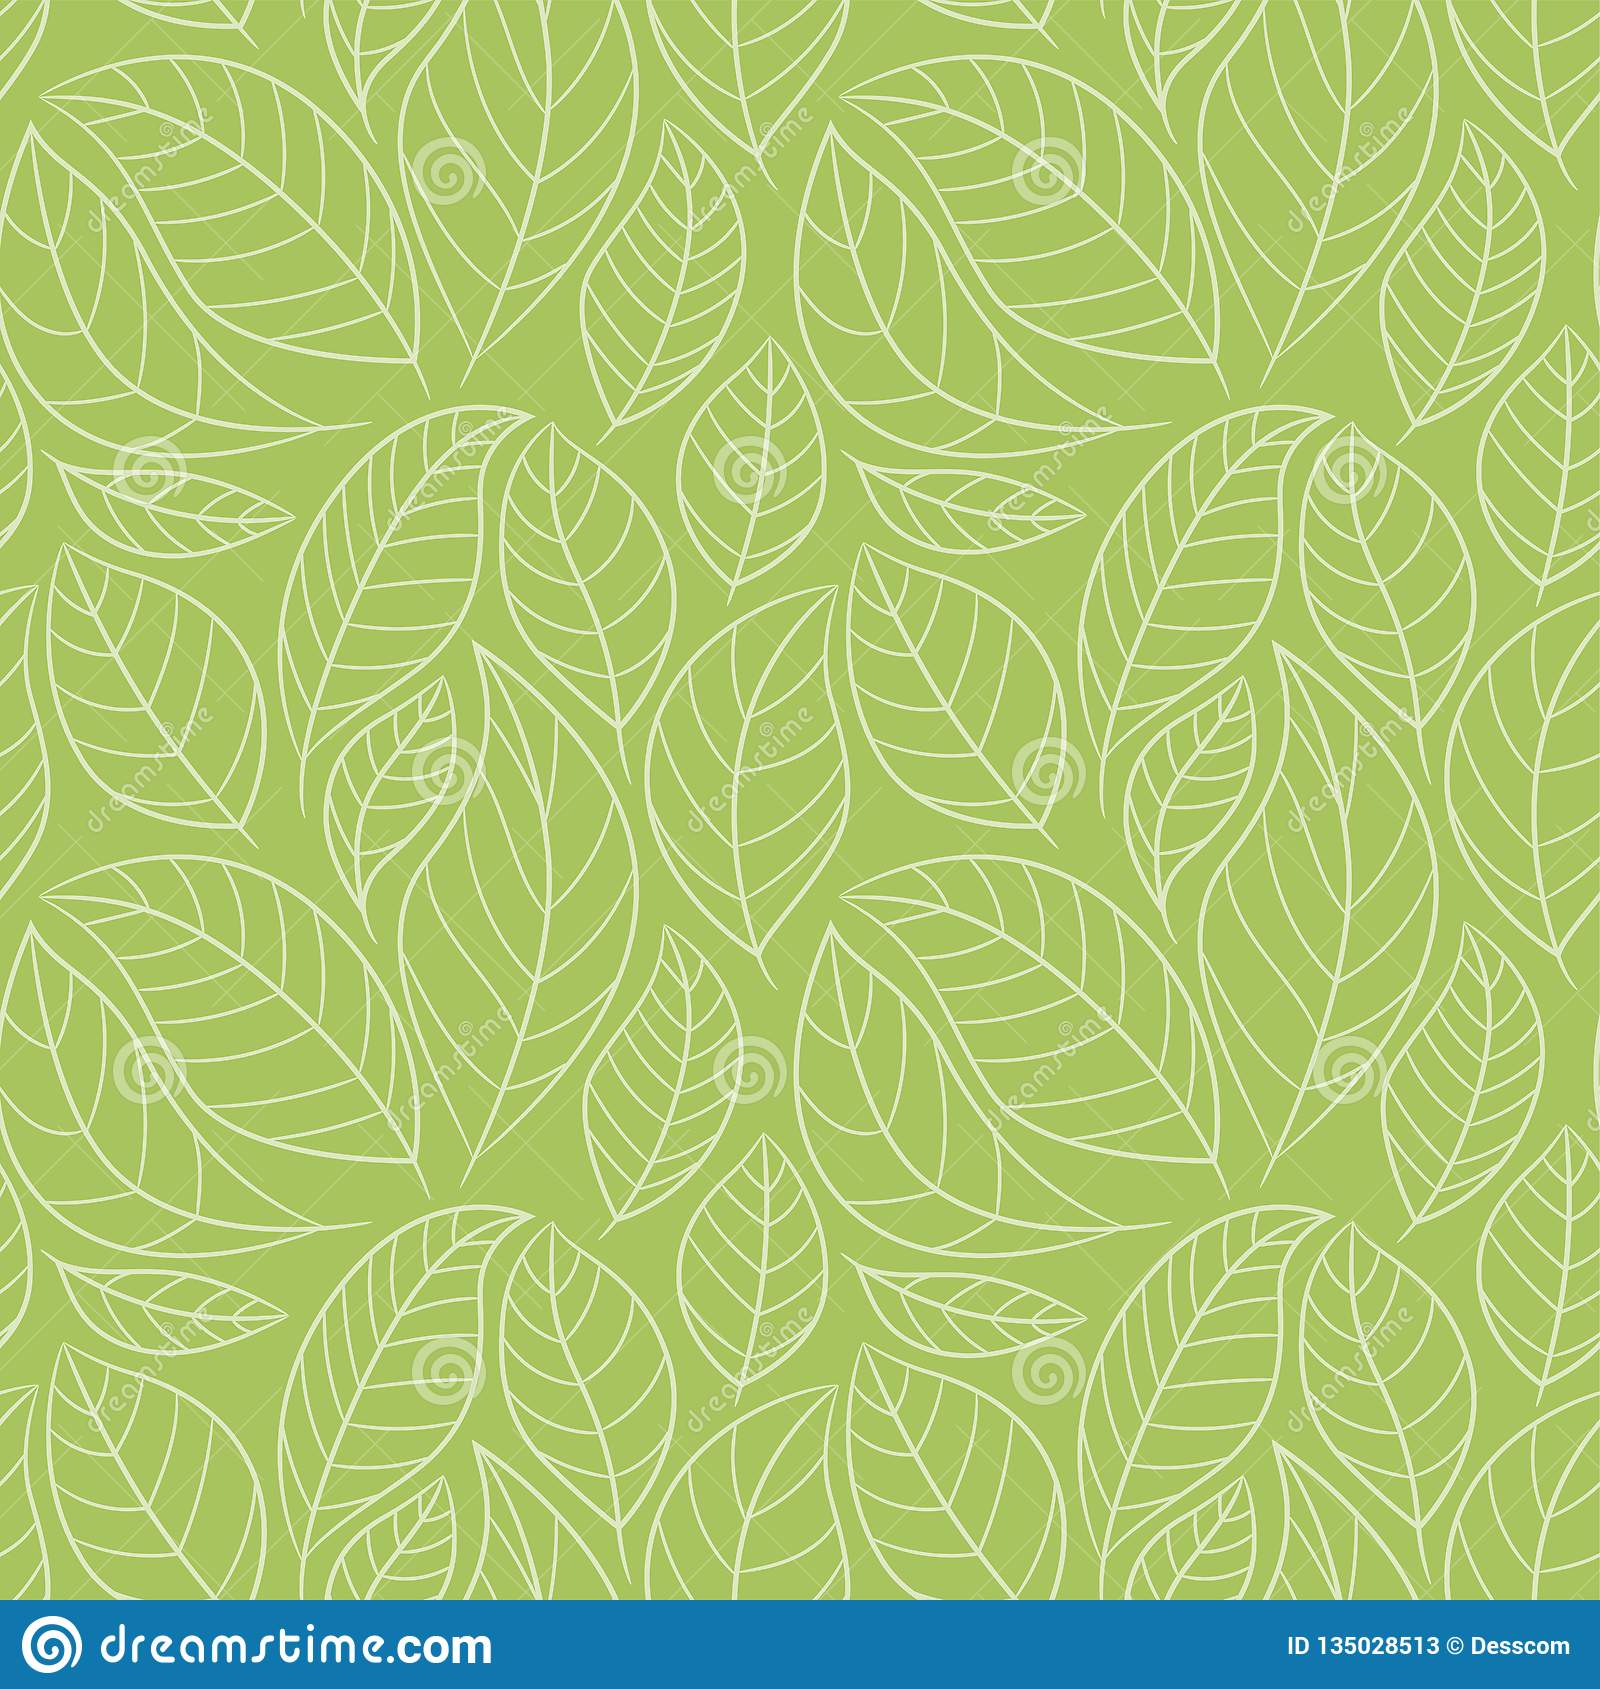 Leaf Seamless Pattern Abstract Floral Background With